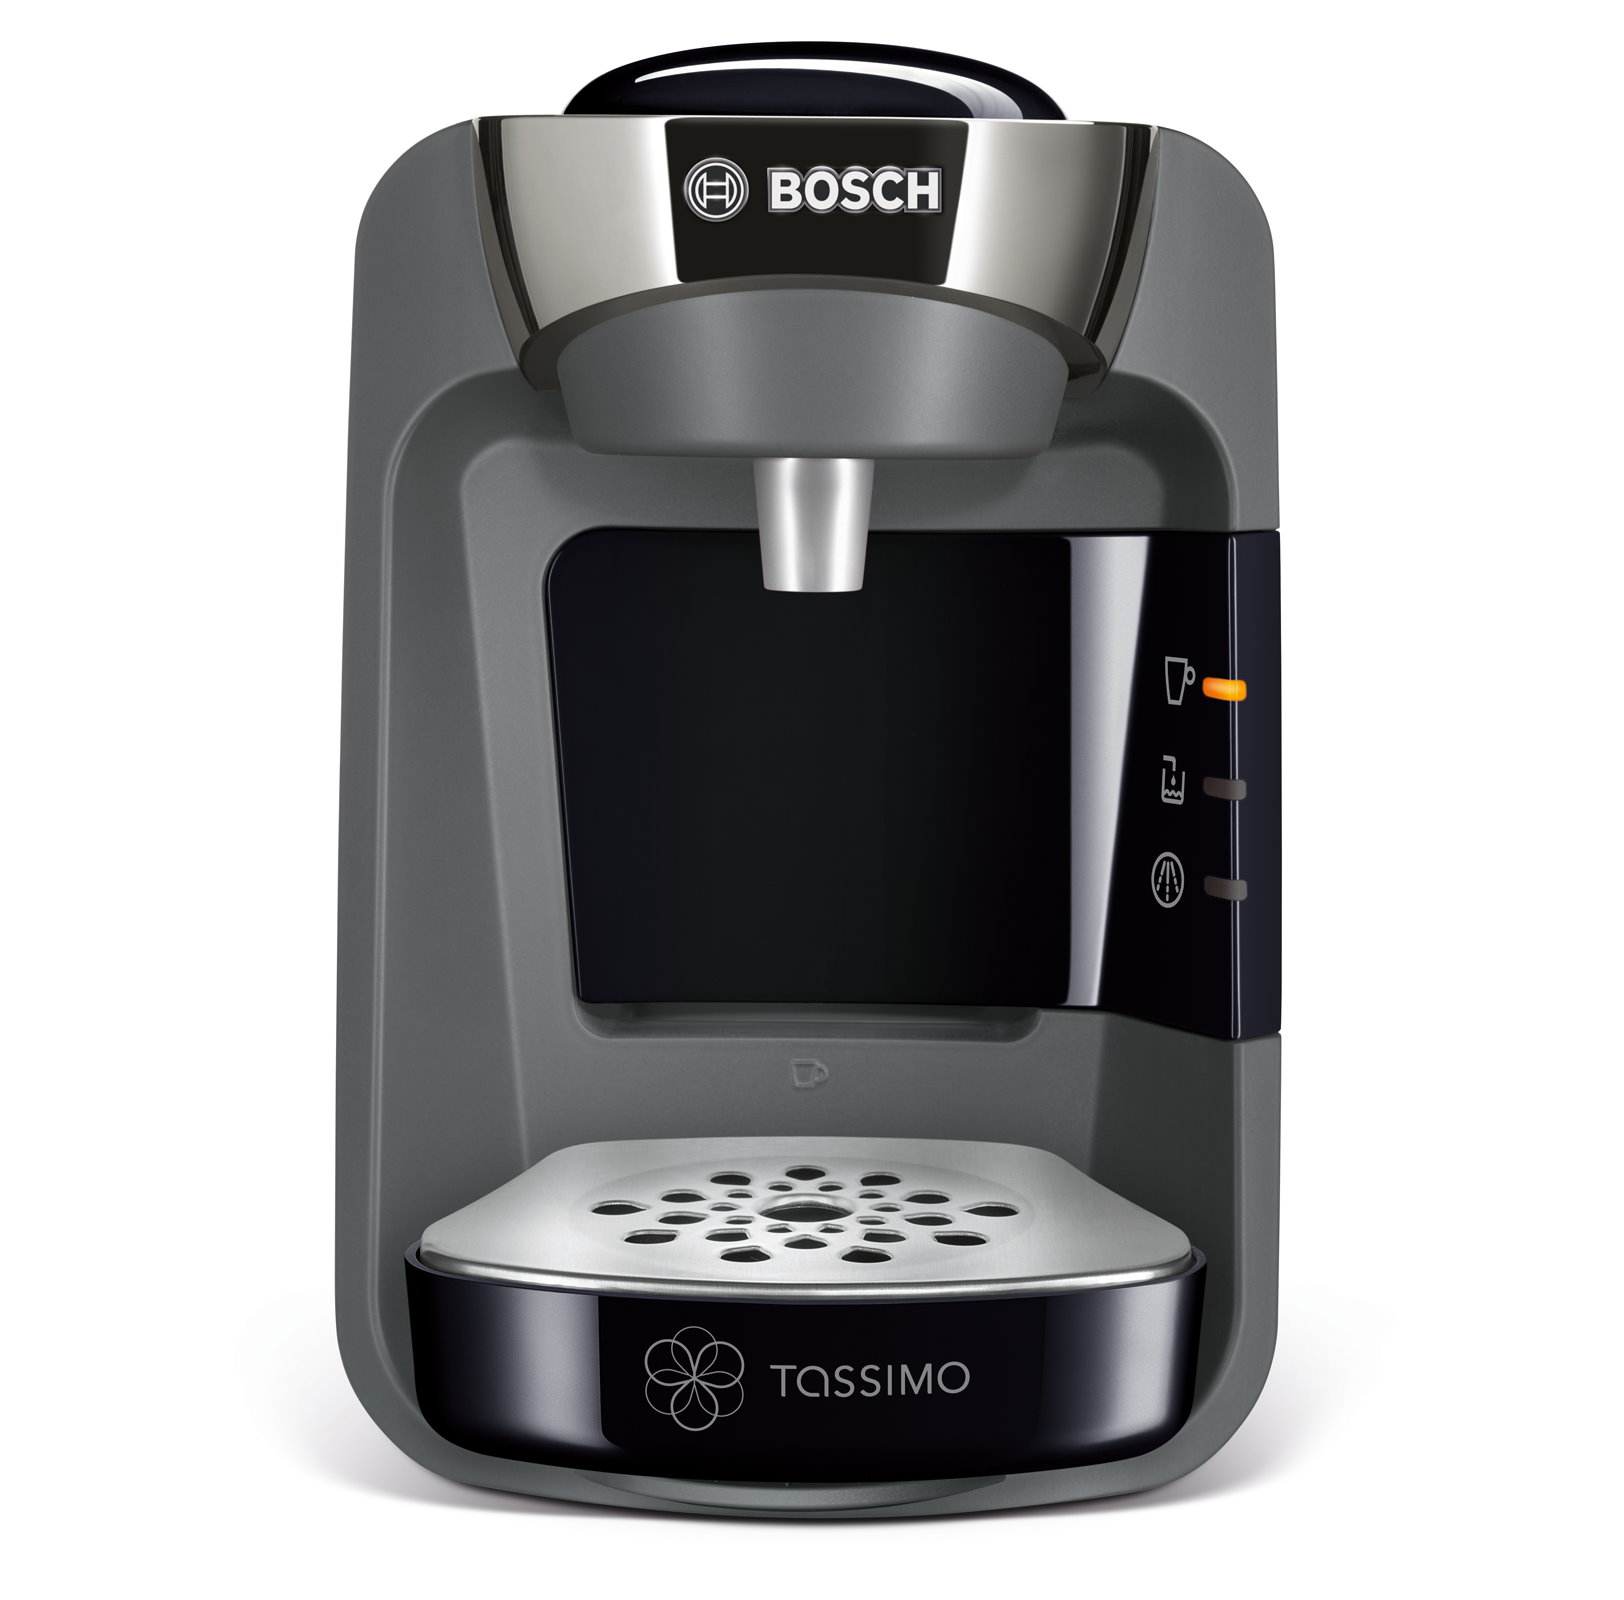 bosch tassimo suny 40 voucher 2x t disc wmf glasses hot drinks machine ebay. Black Bedroom Furniture Sets. Home Design Ideas